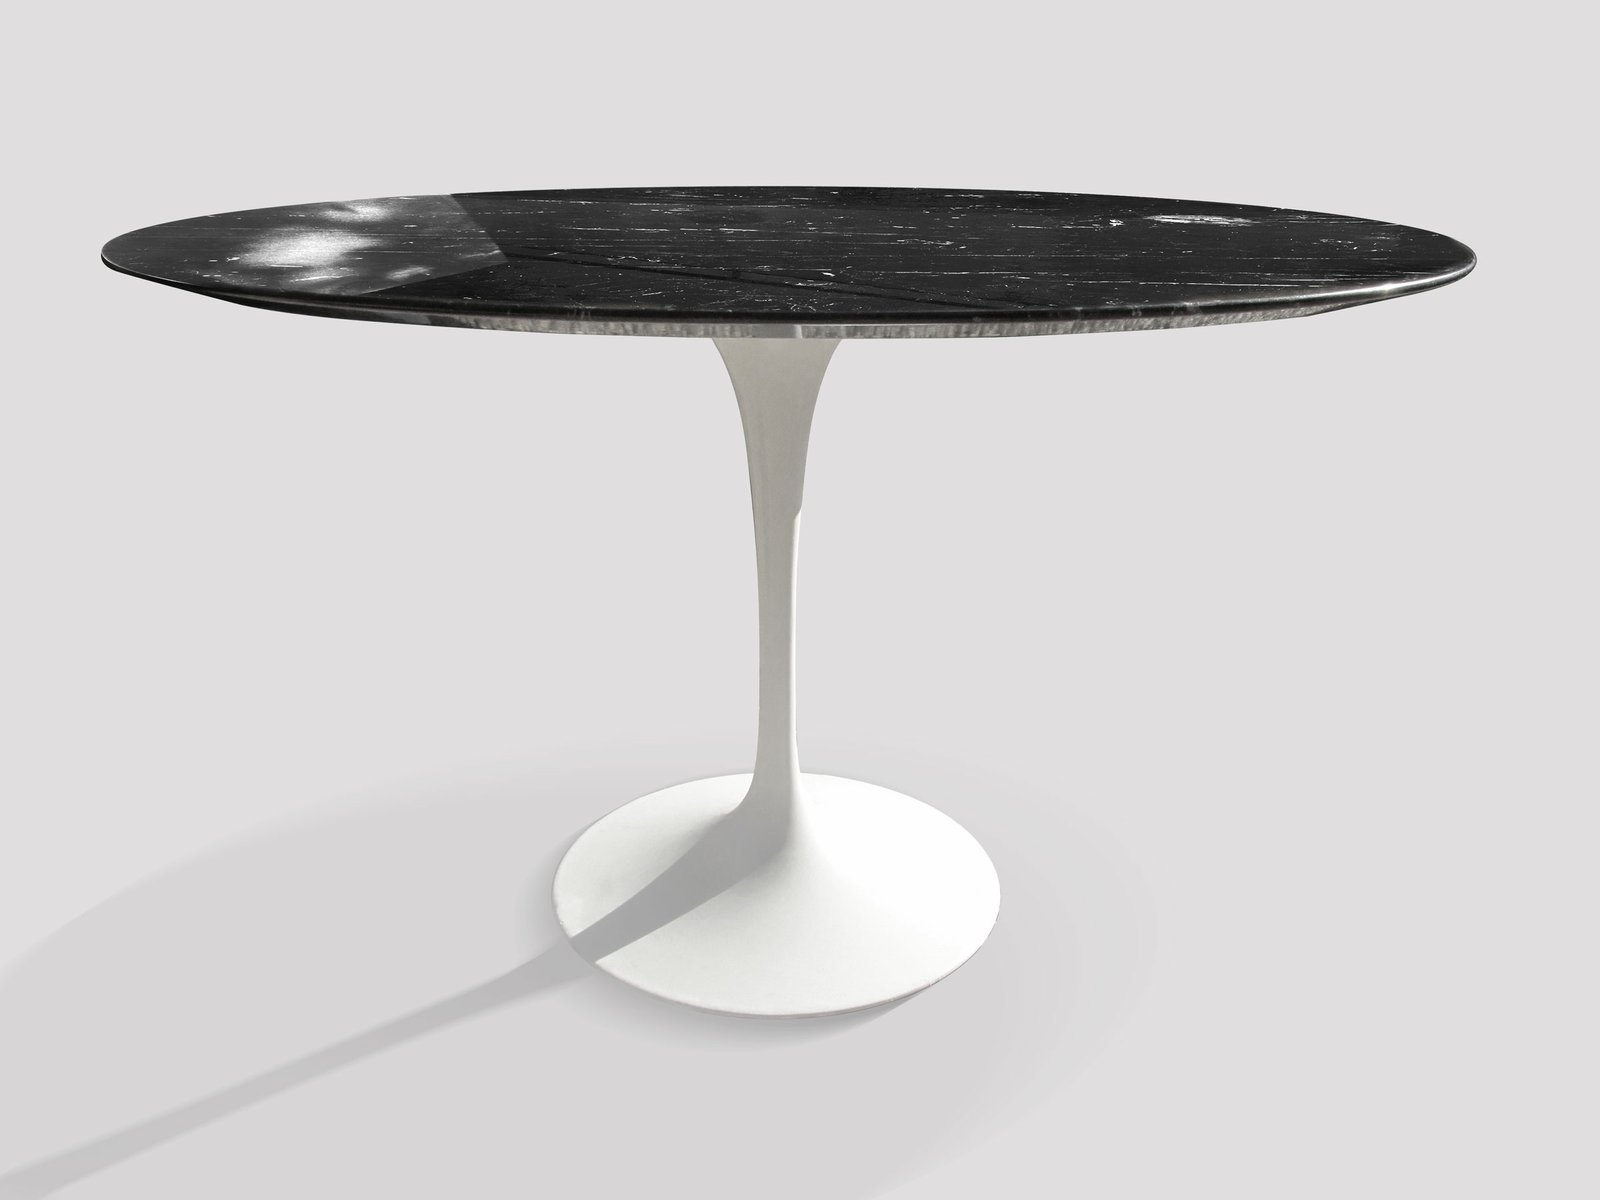 Vintage Black Marquina Dining Table by Eero Saarinen for Knoll for